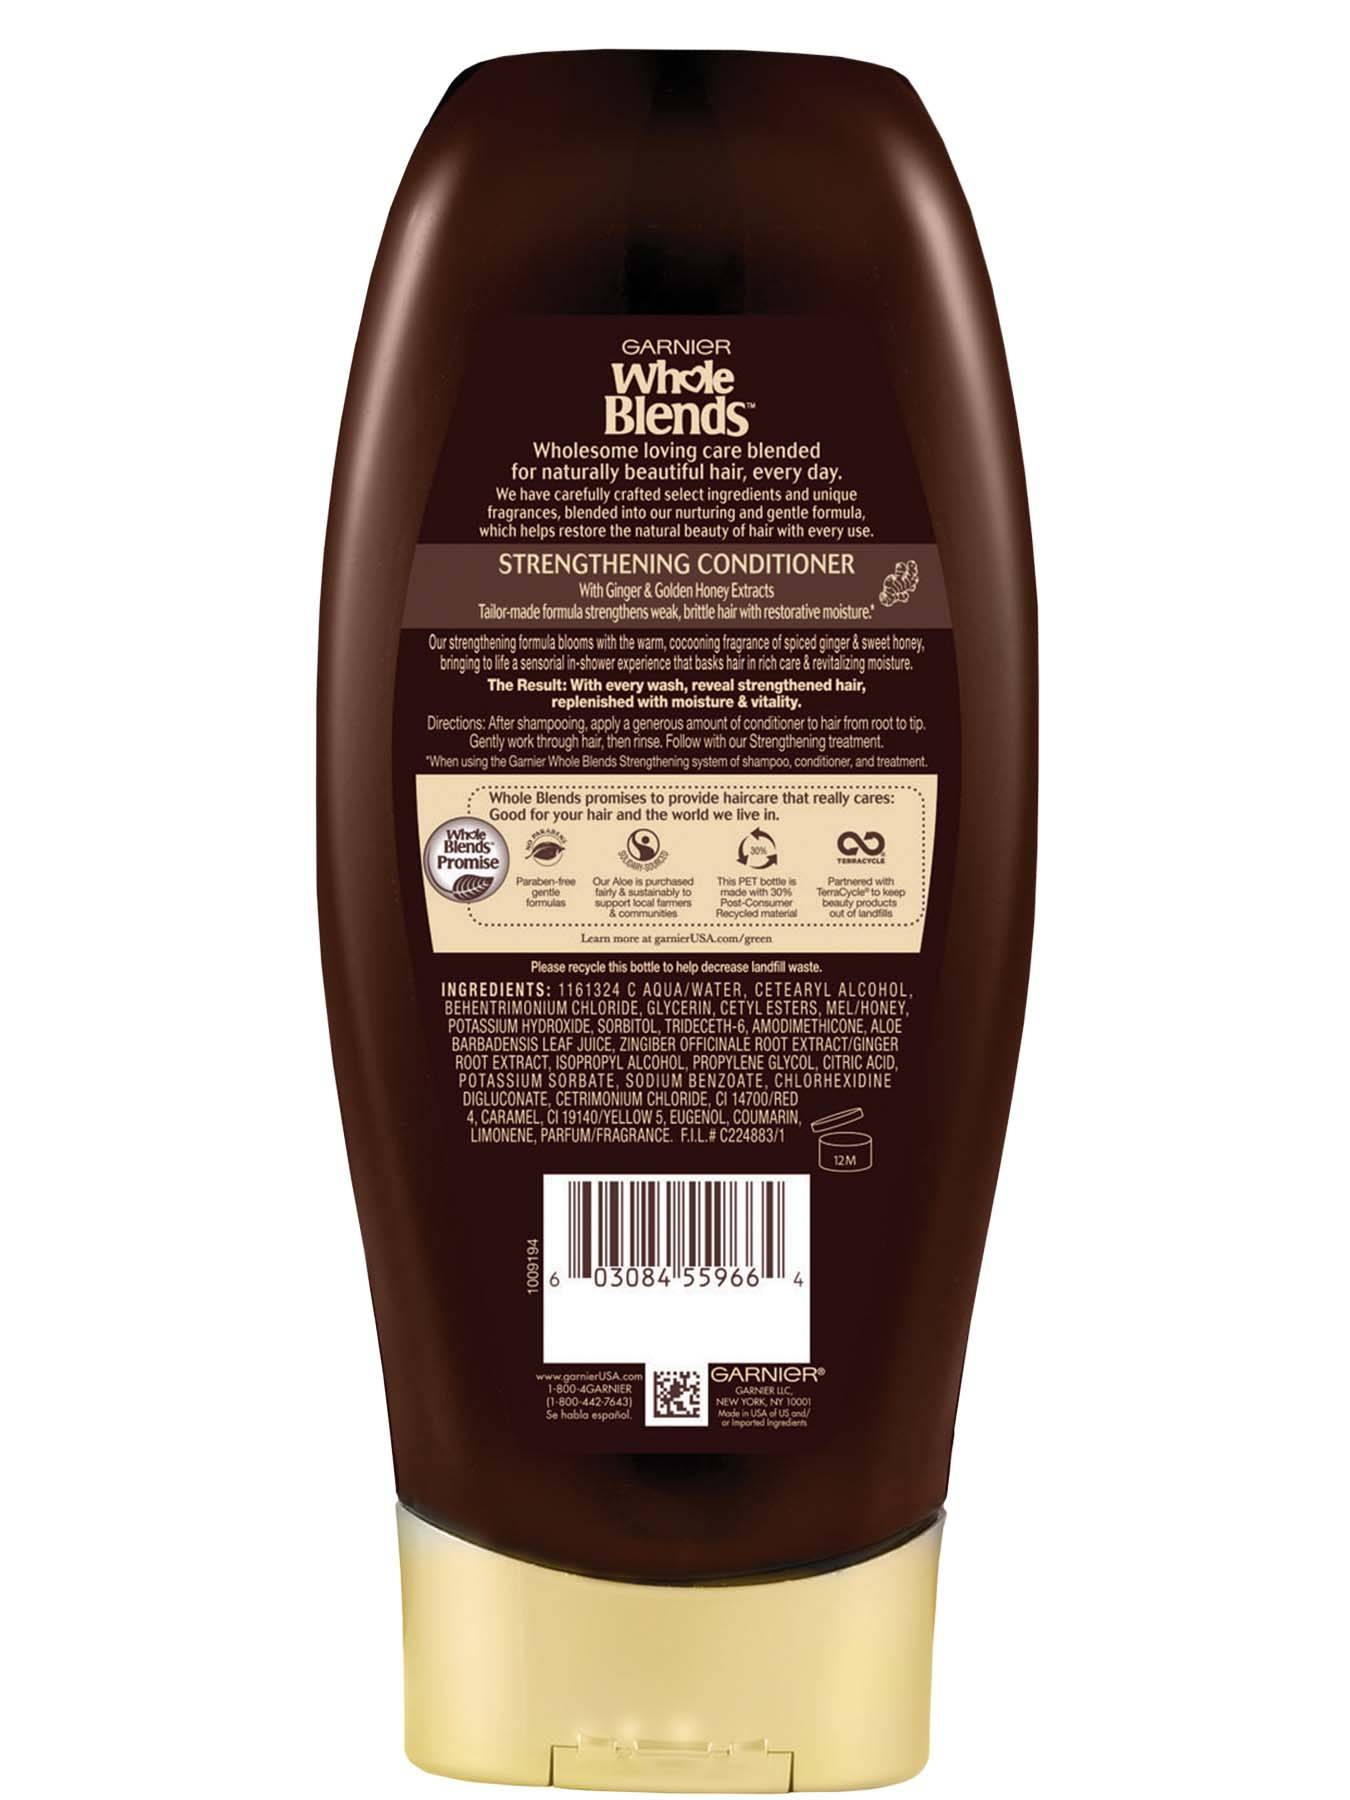 Back view of Whole Blends Ginger Recovery Strengthening Conditioner.